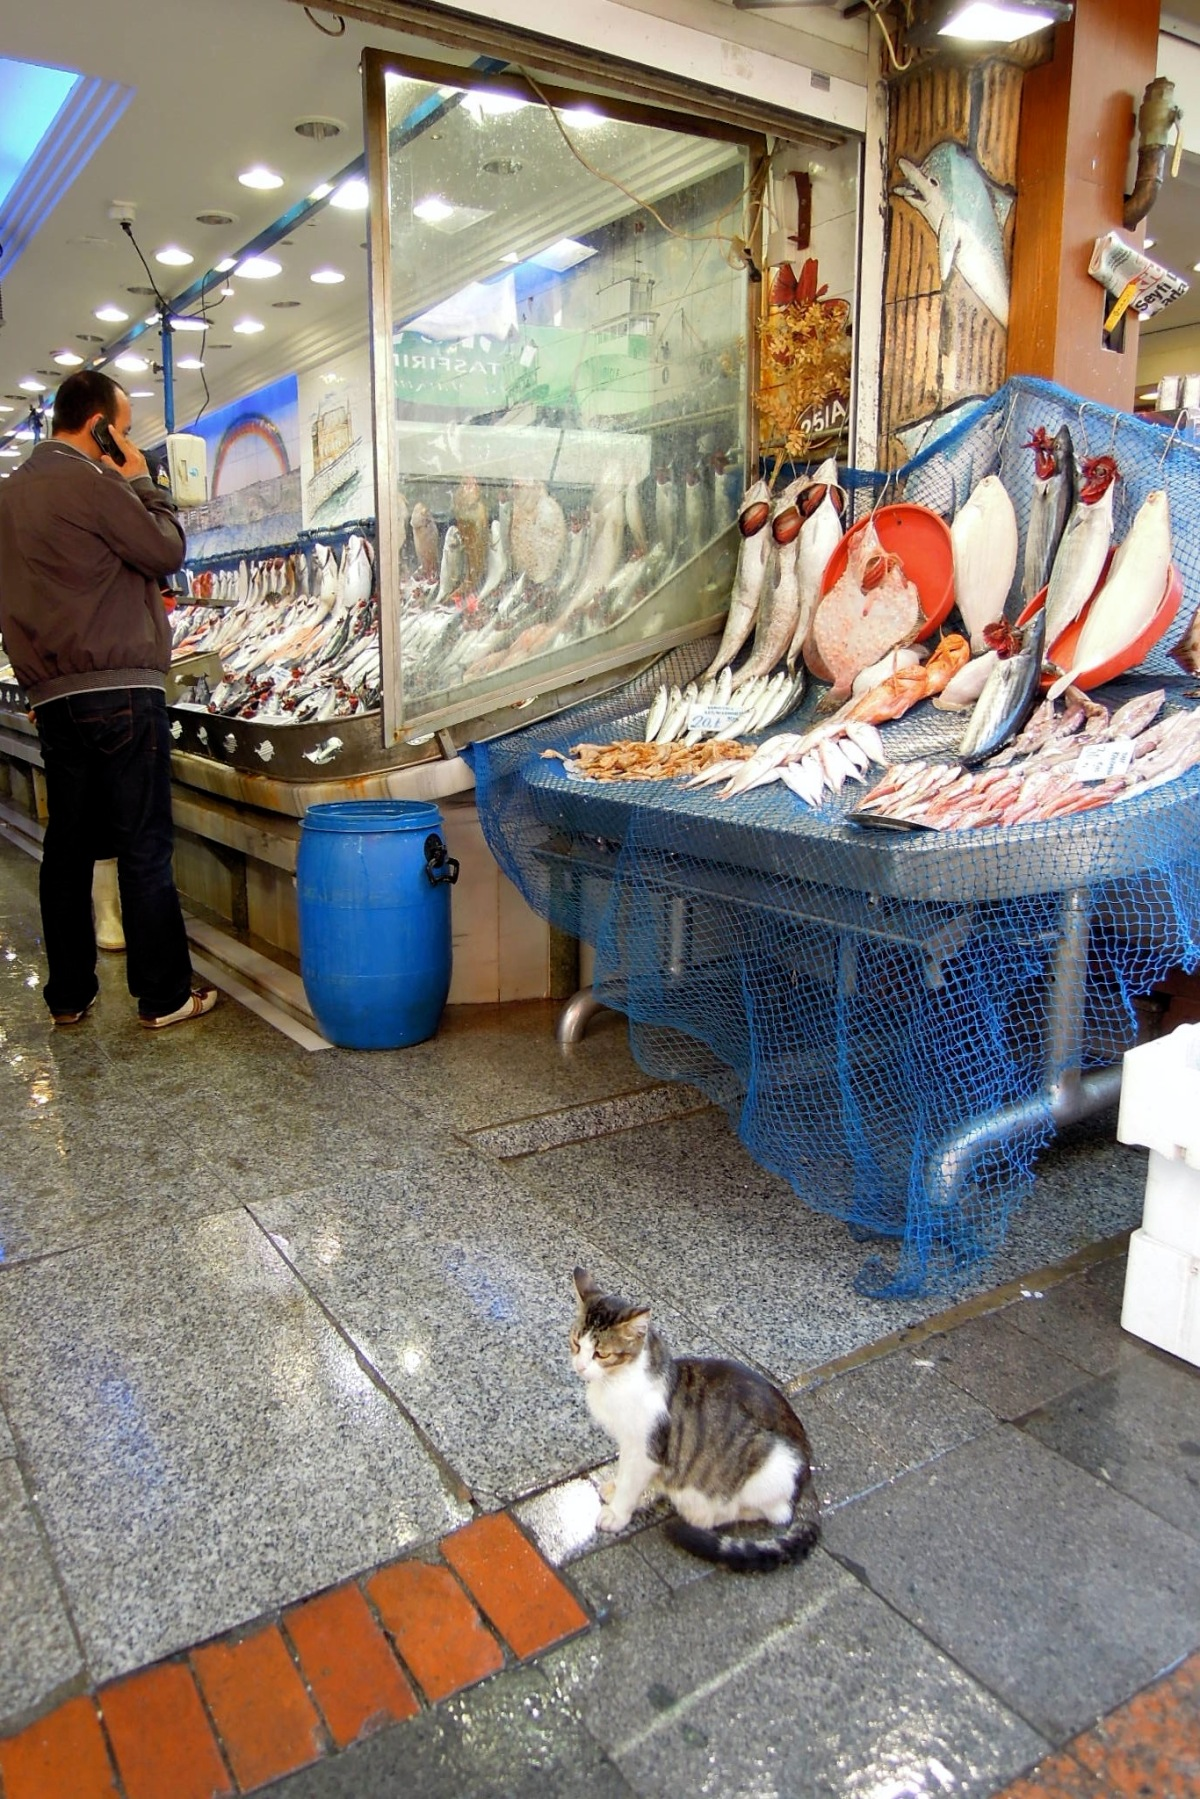 Fish stand with cat